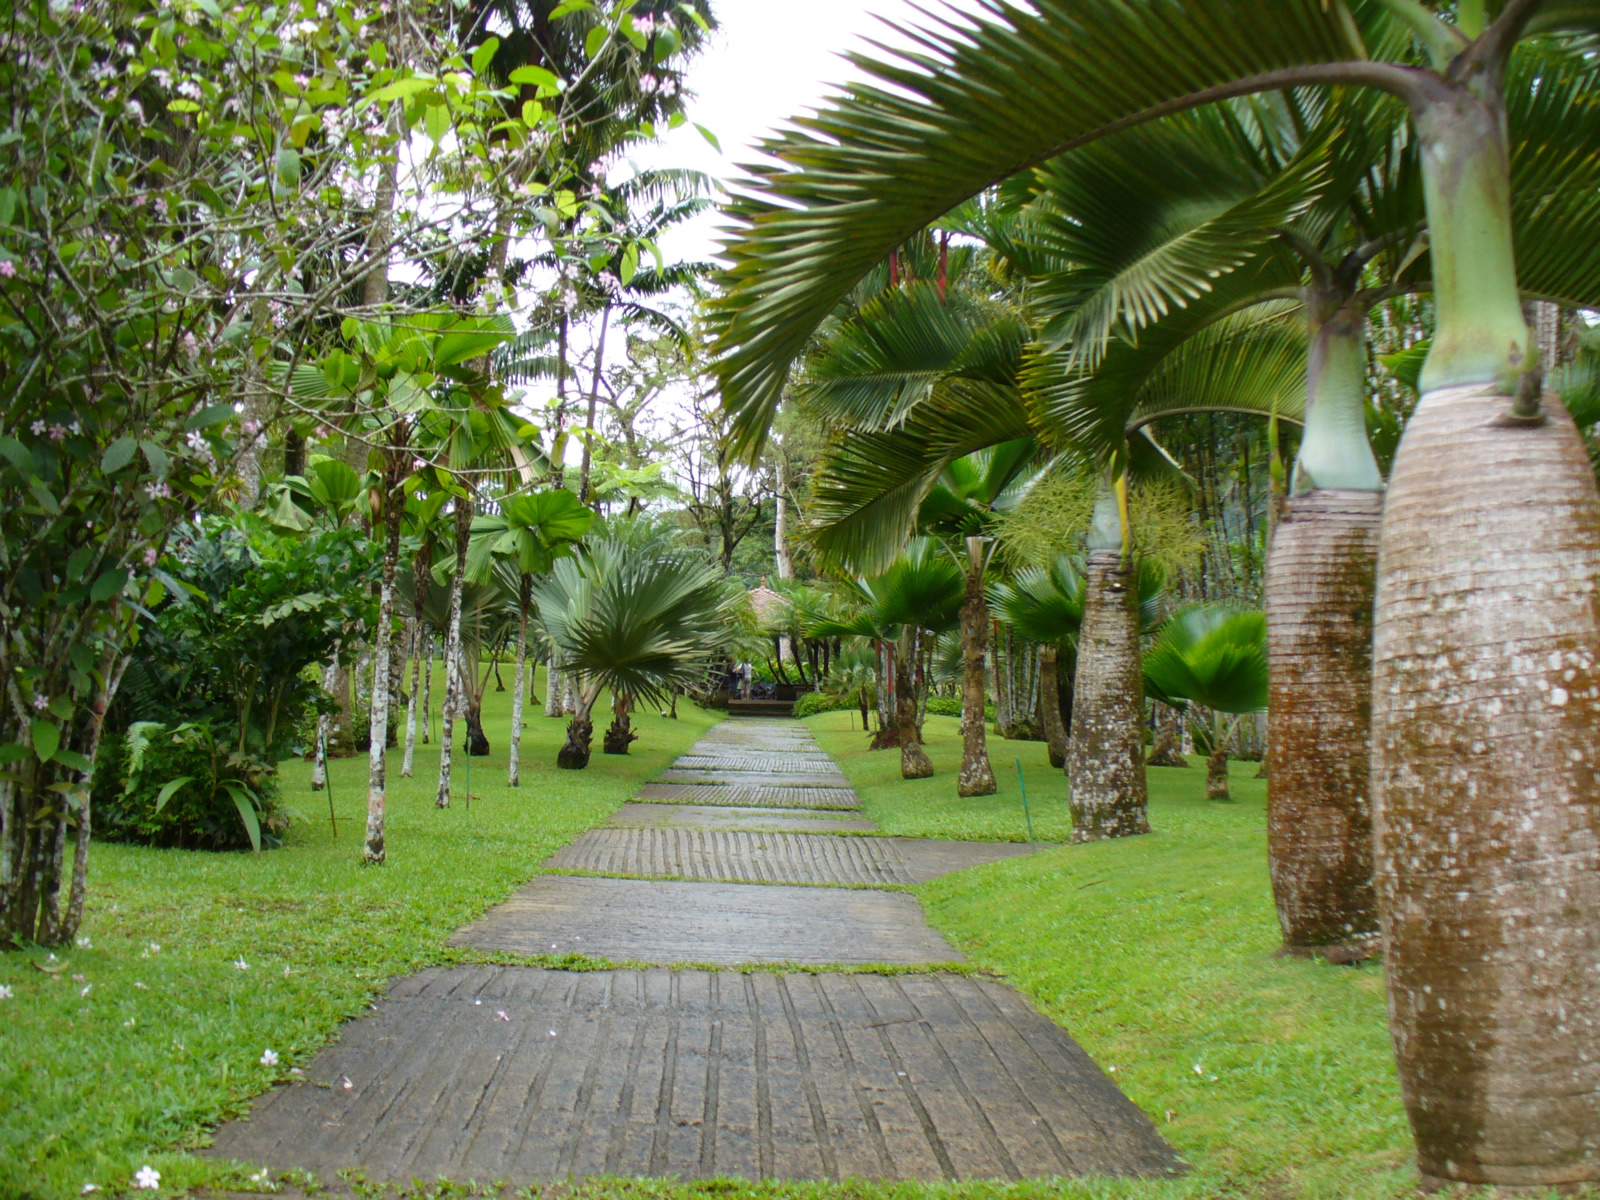 Le Jardin De France Of Fort De France Martinique Cartes Photos Et Infos